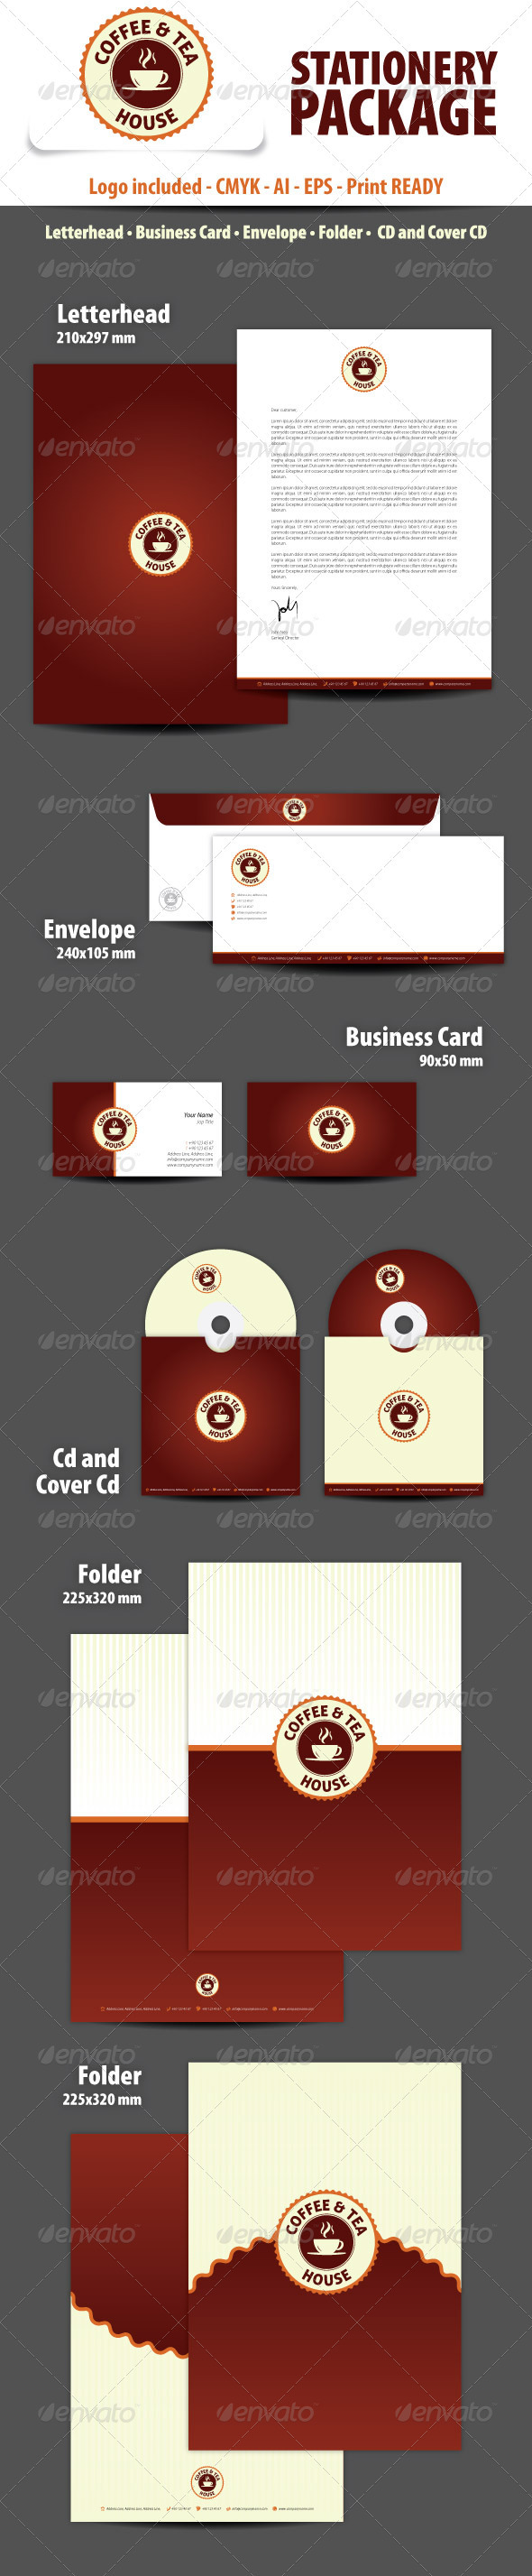 Coffee and Tea House Stationery Package - Stationery Print Templates